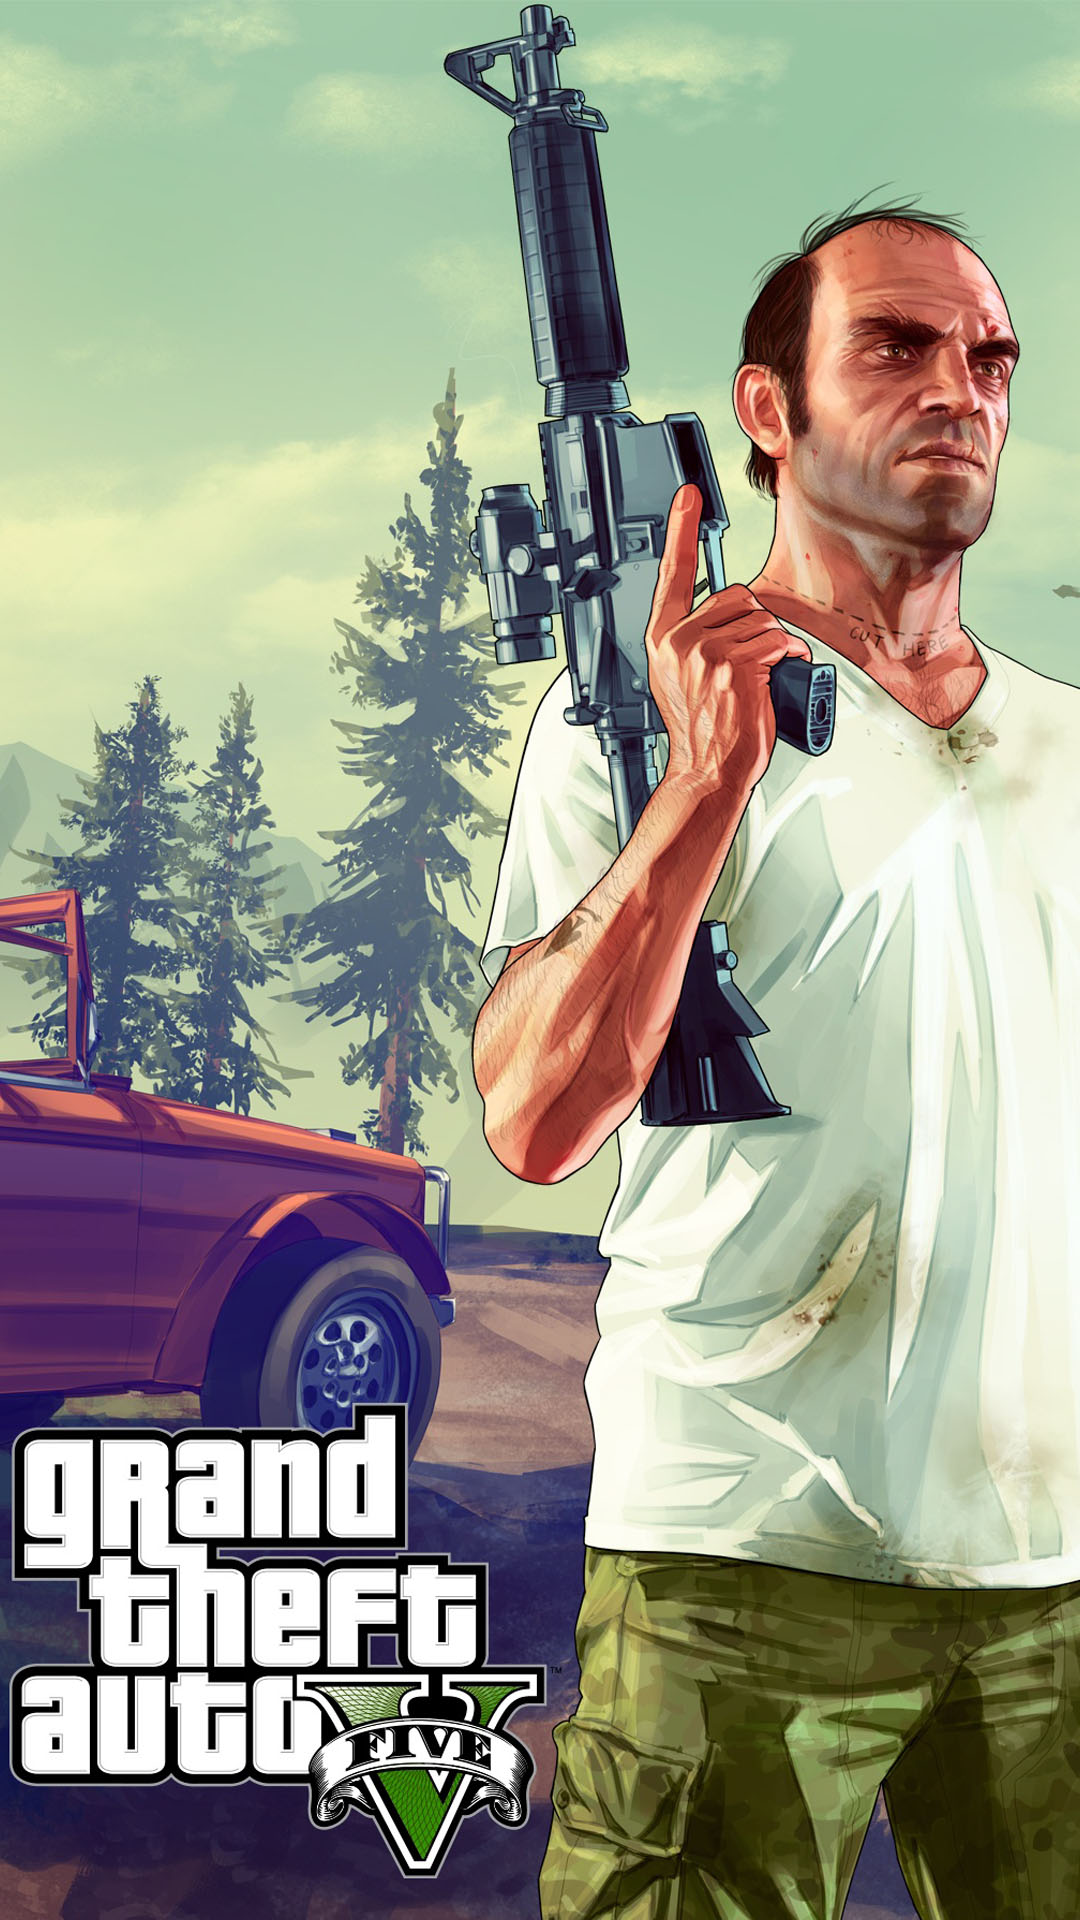 grand theft auto gta - best htc one wallpapers, free and easy to